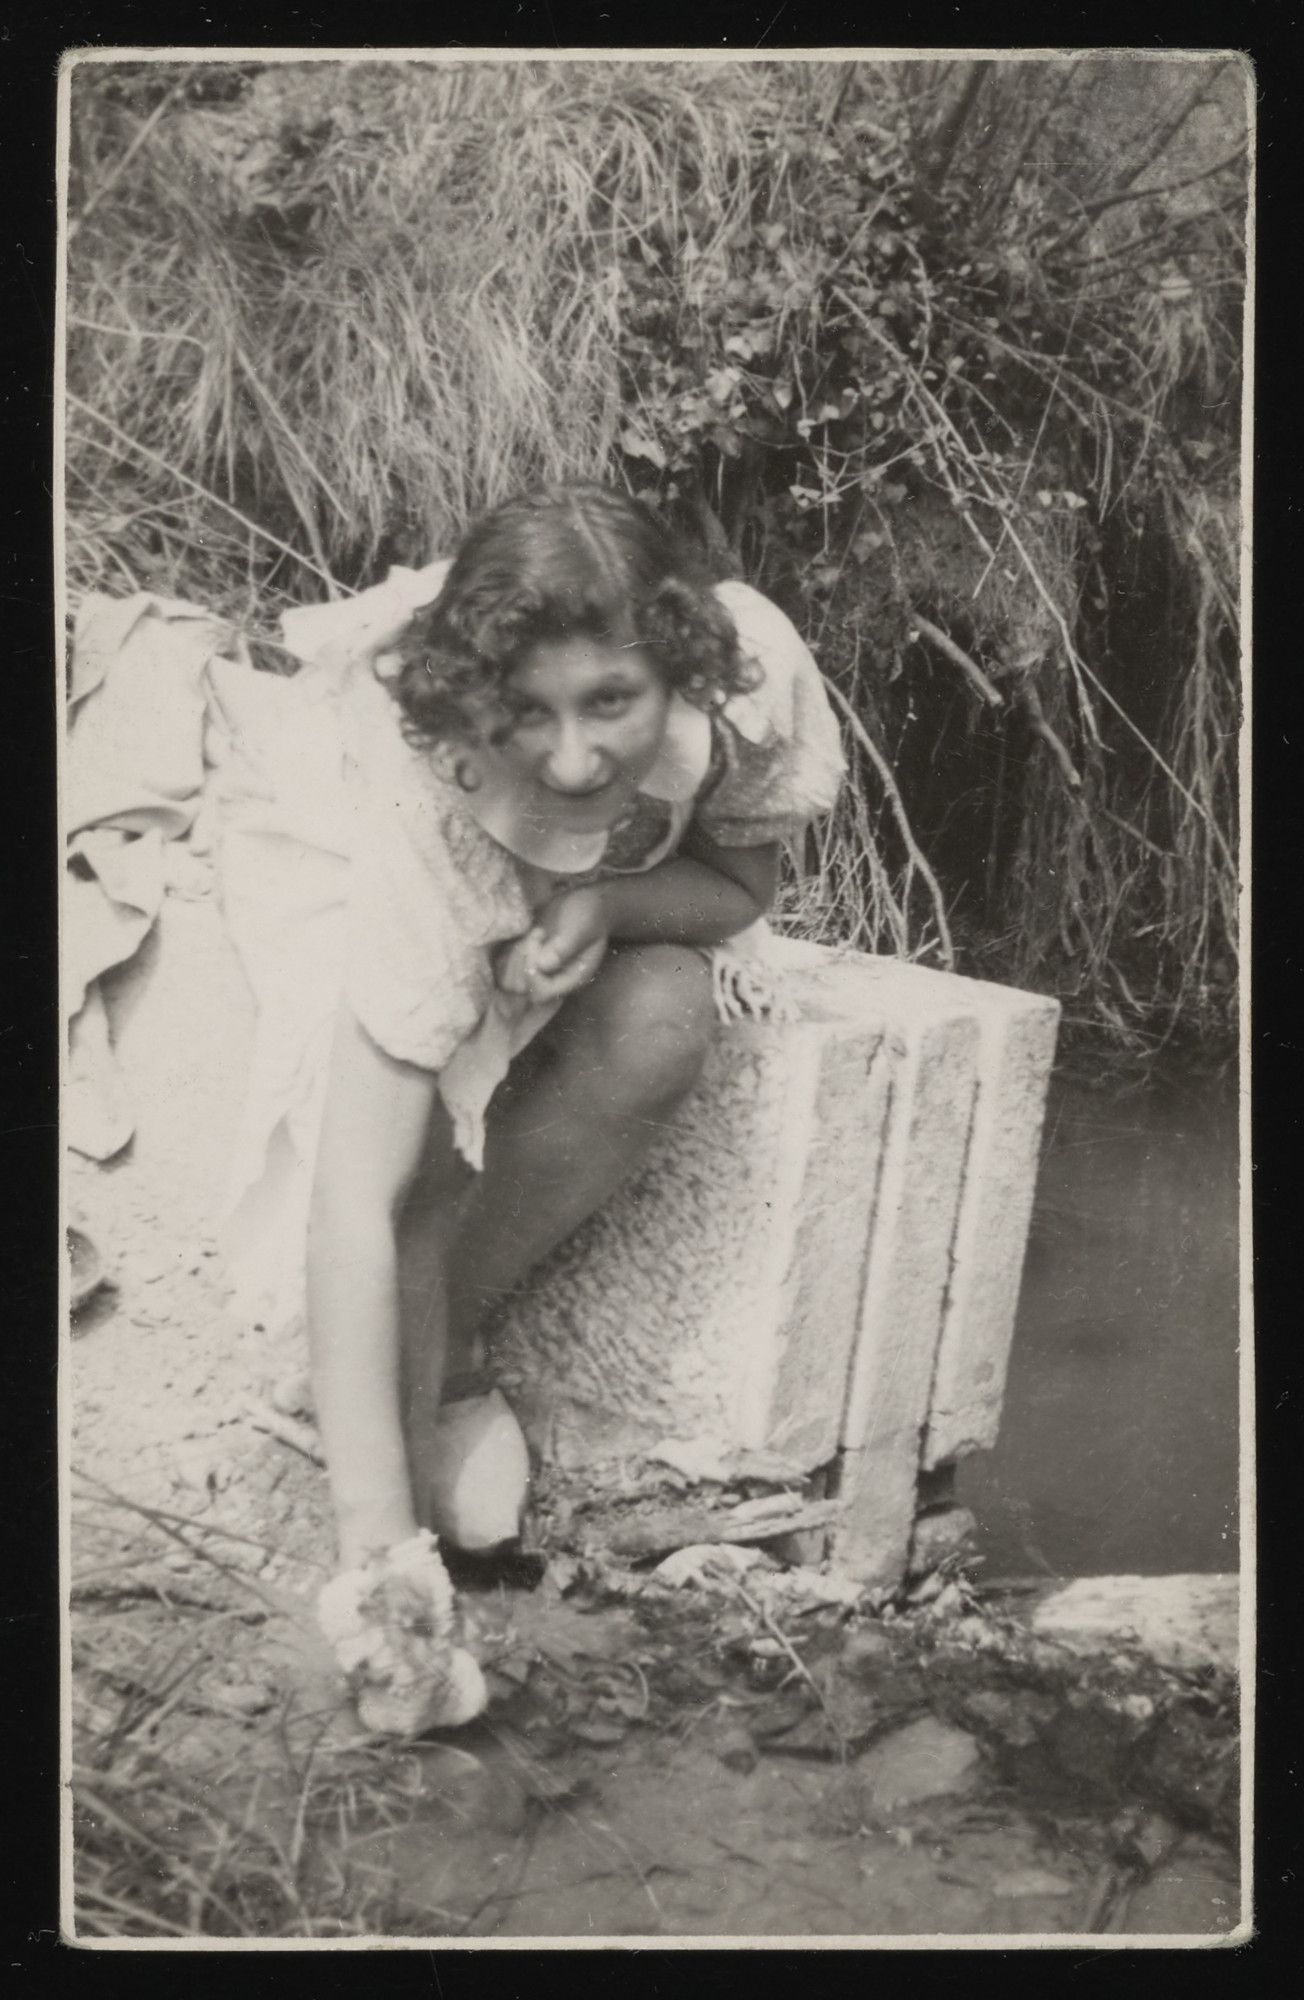 Inge Helft sits by a lake or river at the La Hille childrens home.